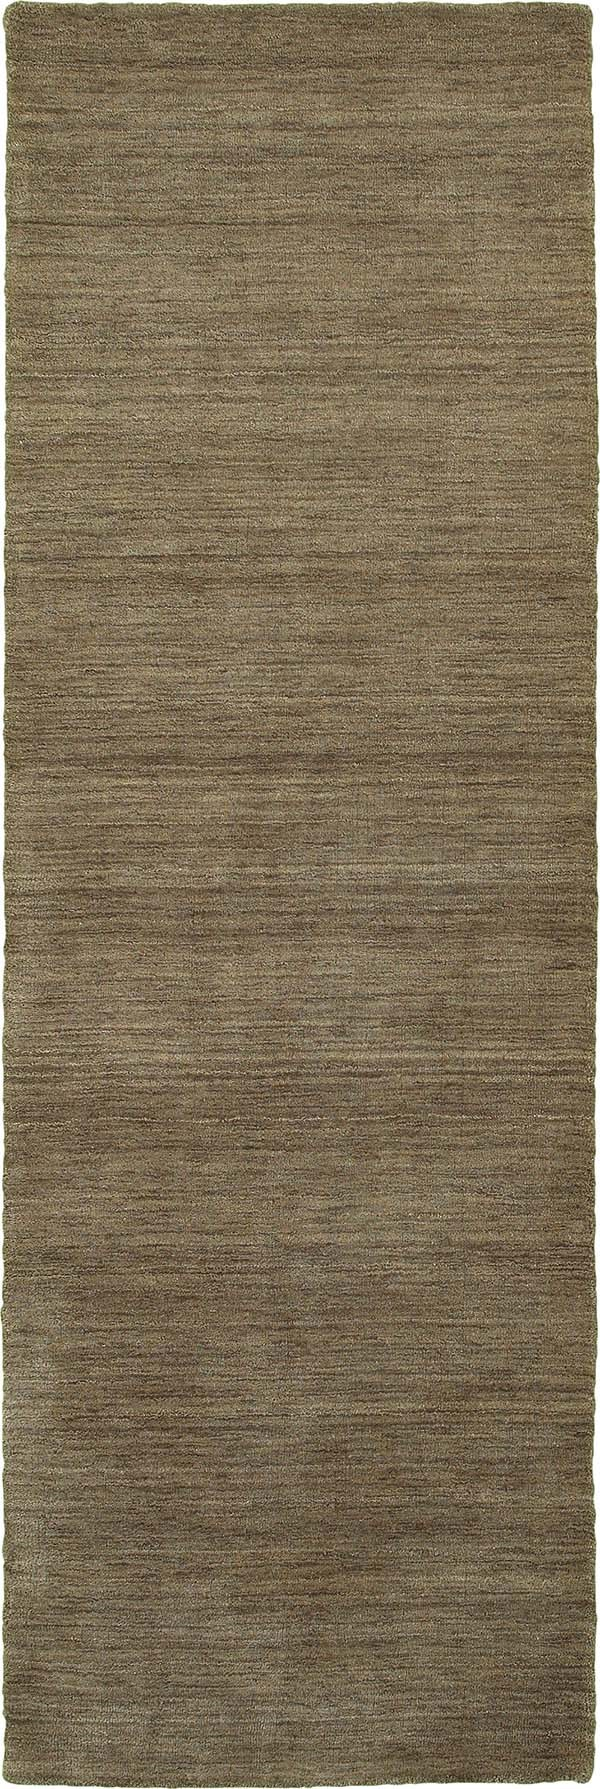 Green (27105) Casual Area Rug